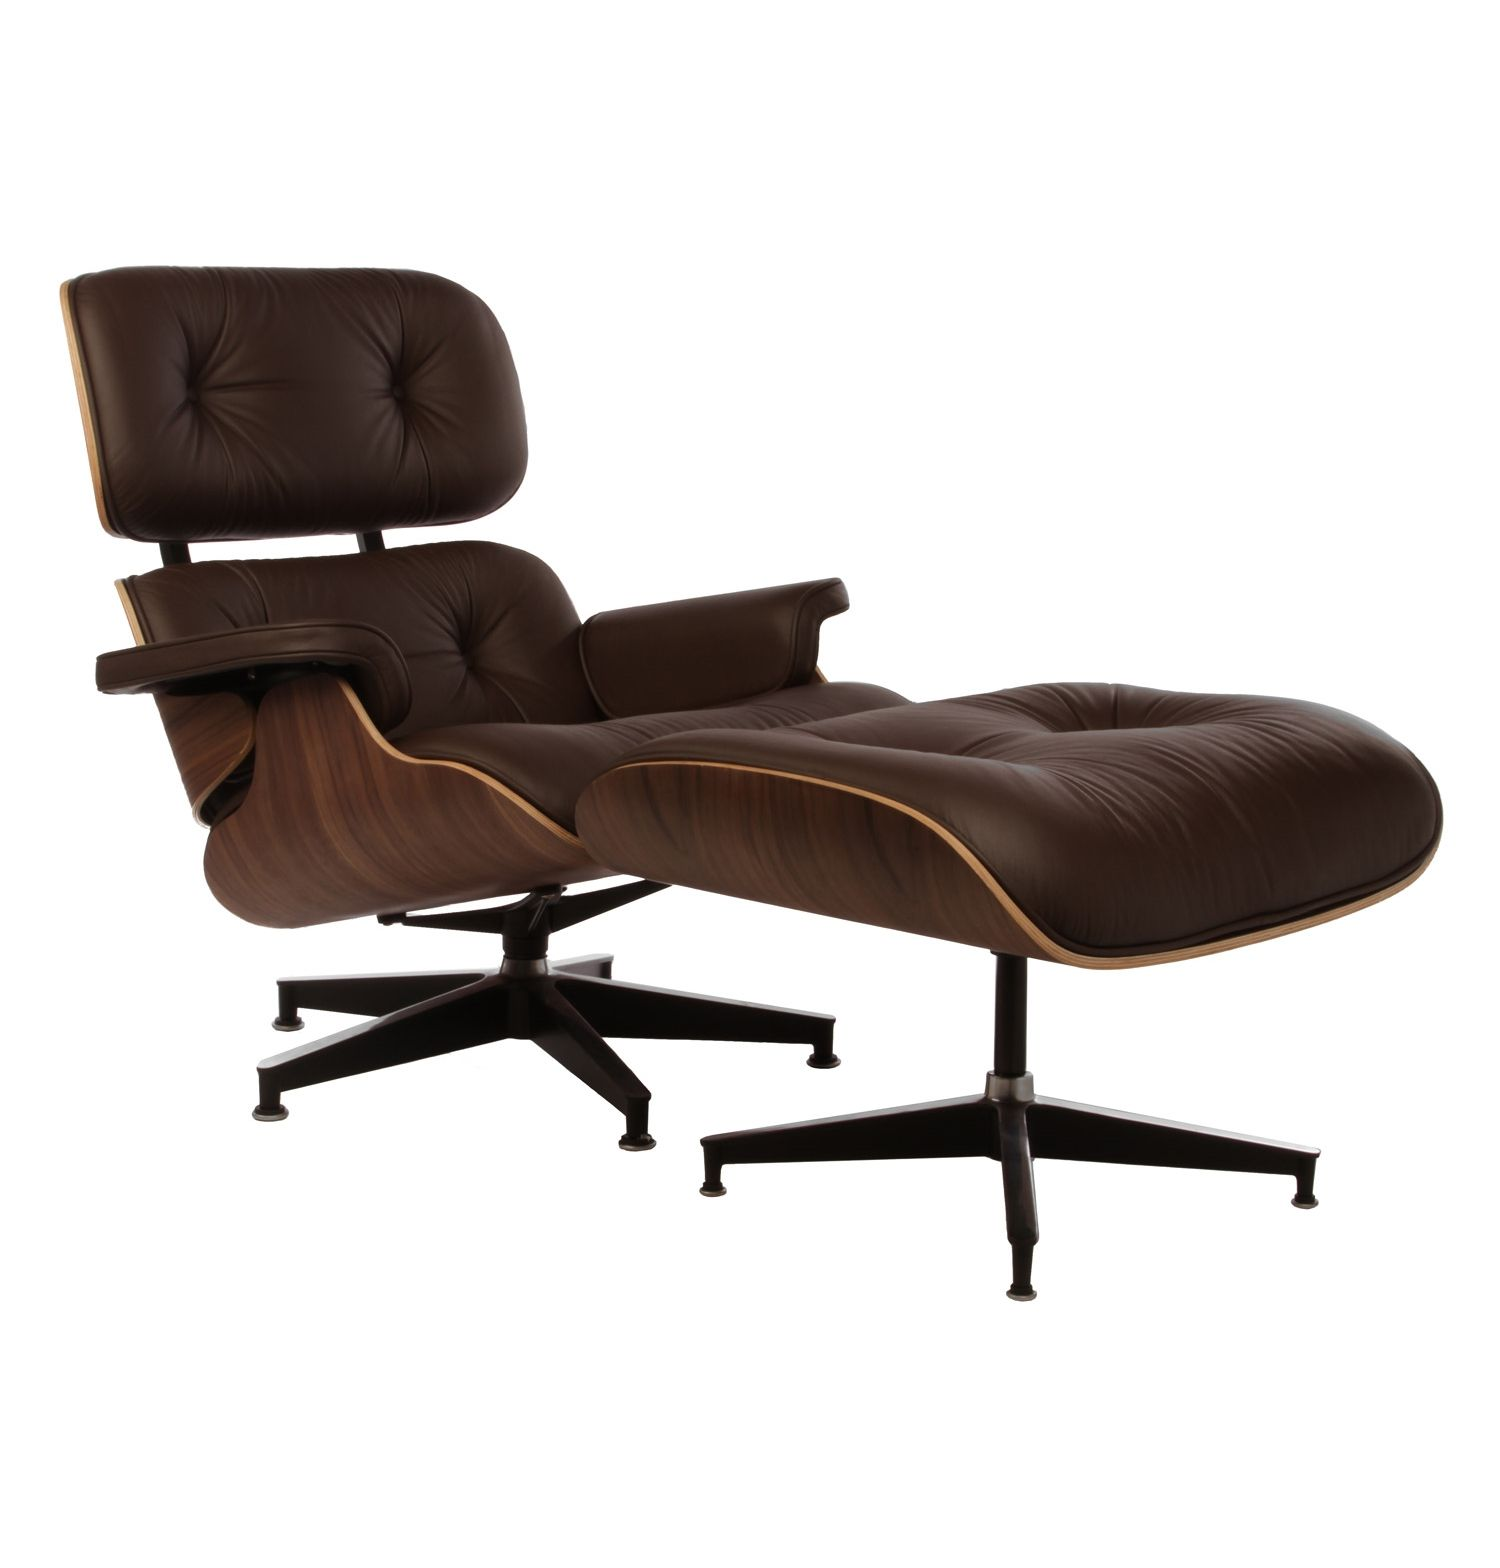 replica eames premium lounge chair and ottoman by charles and ray